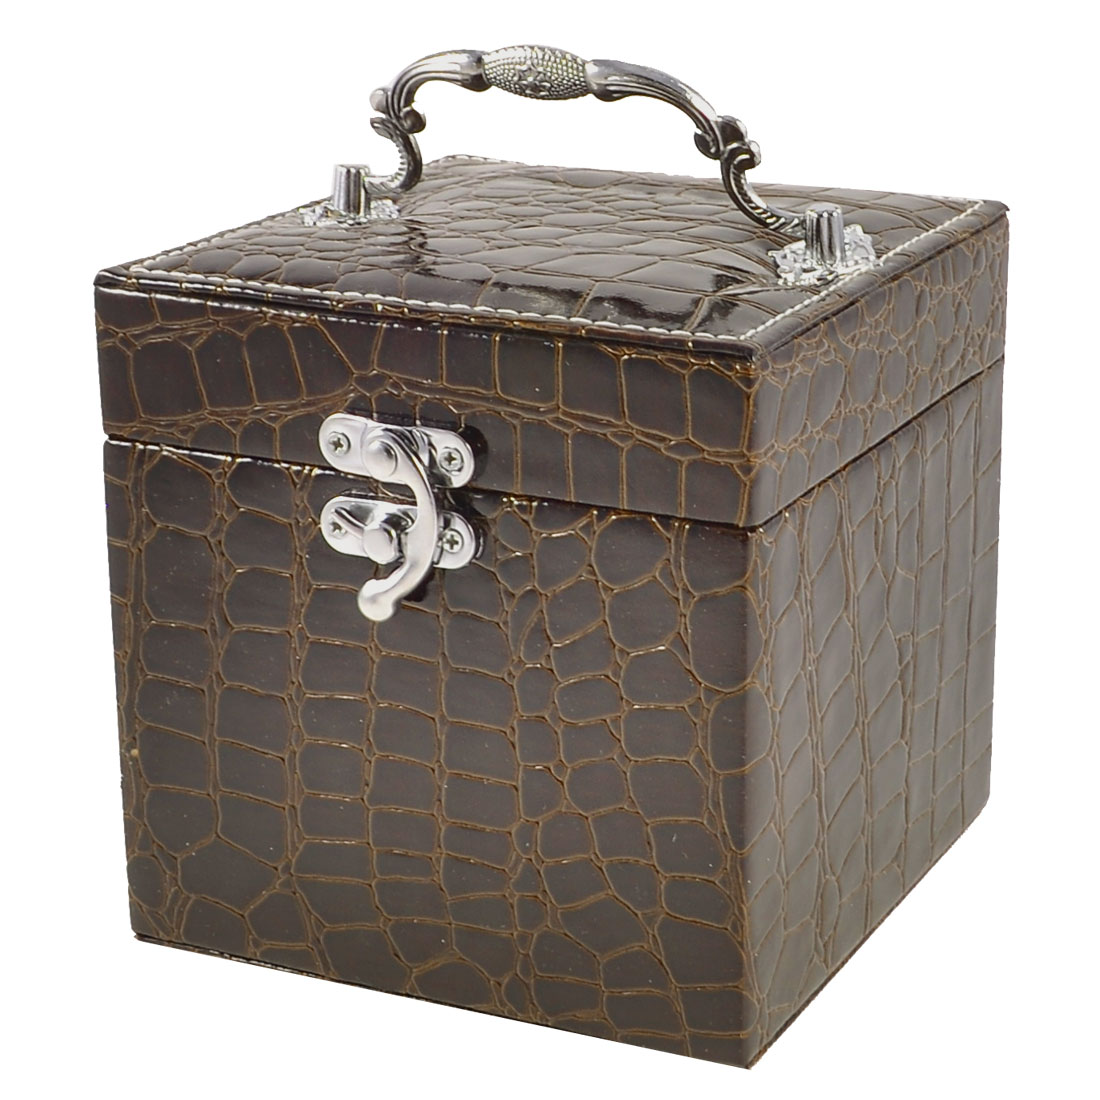 Lady Crocodile Print Faux Leather Cosmetic Holder Jewelry Box Dark Brown